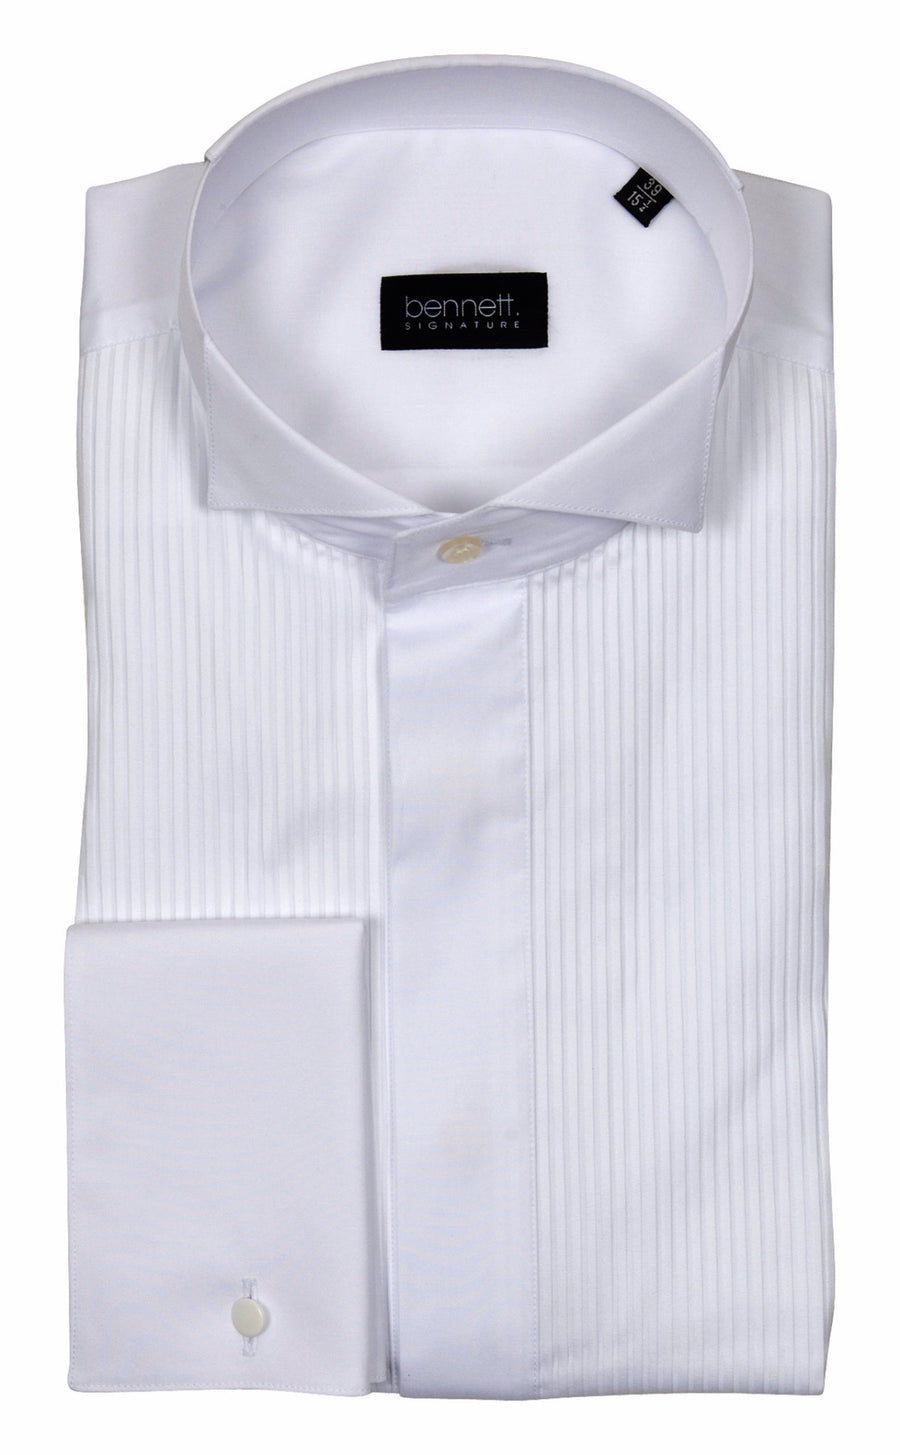 Bennett Signature Dinner Shirt Winged Collar in White - Ron Bennett Menswear